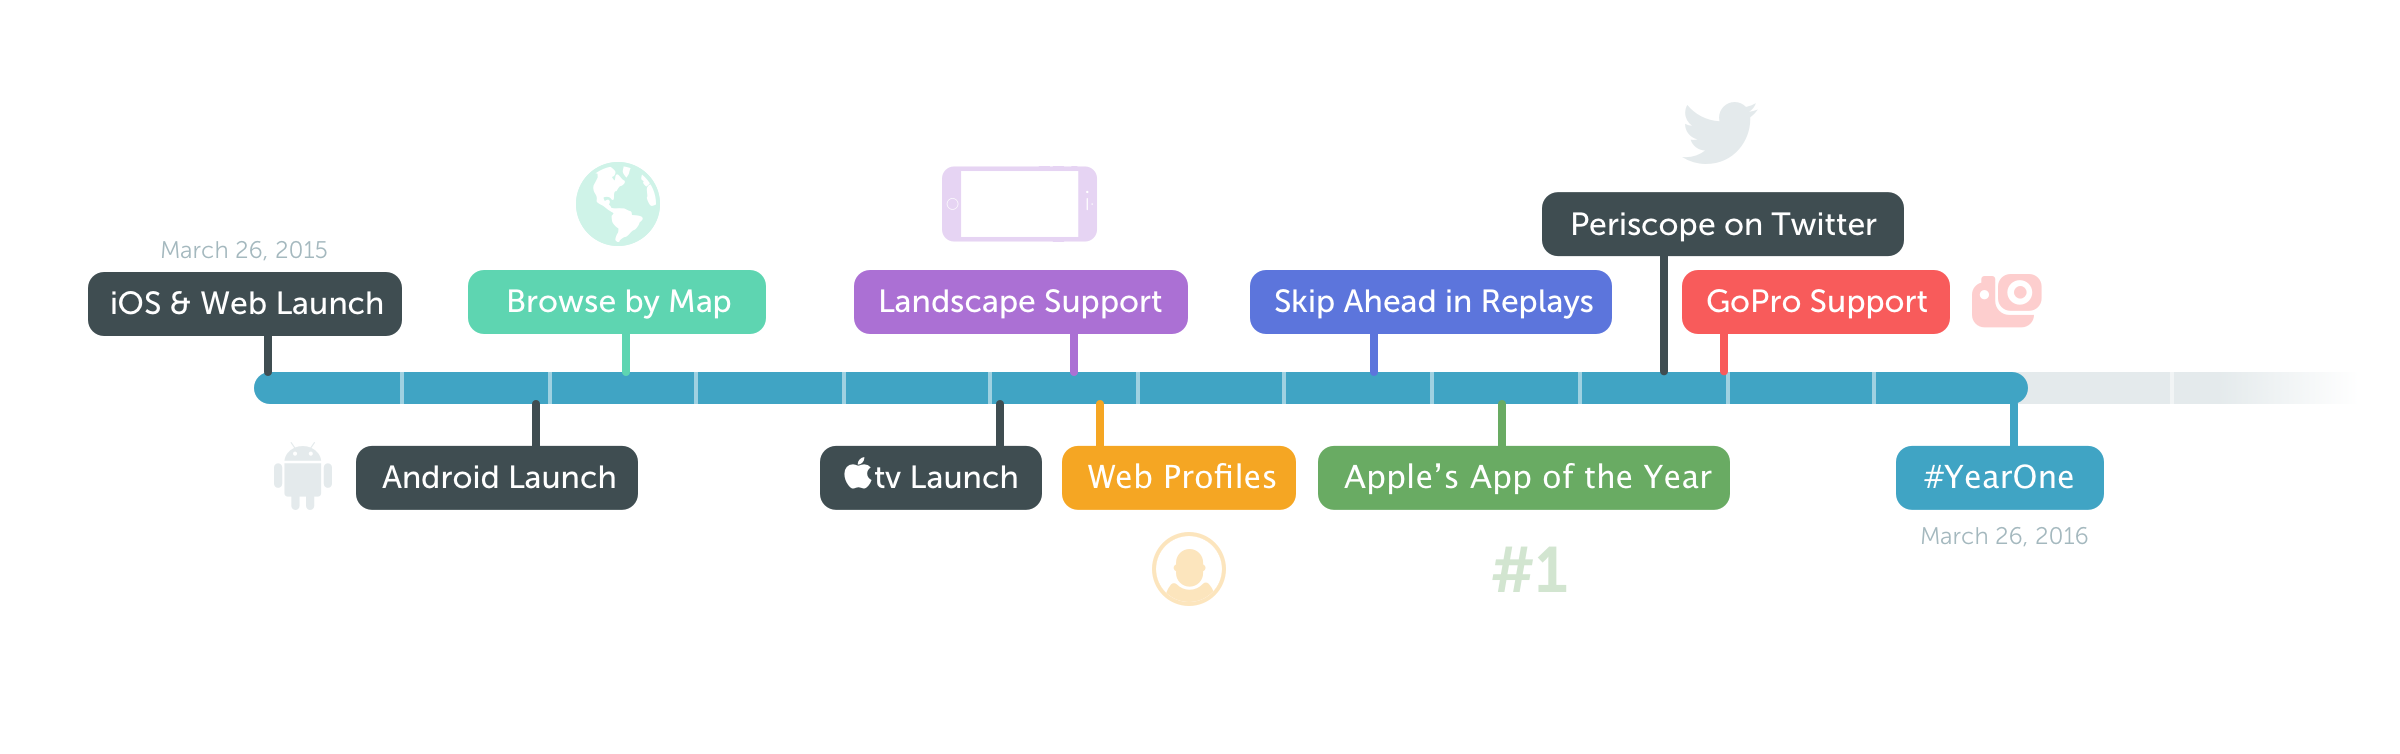 A timeline of Periscope's achievements in the past year.